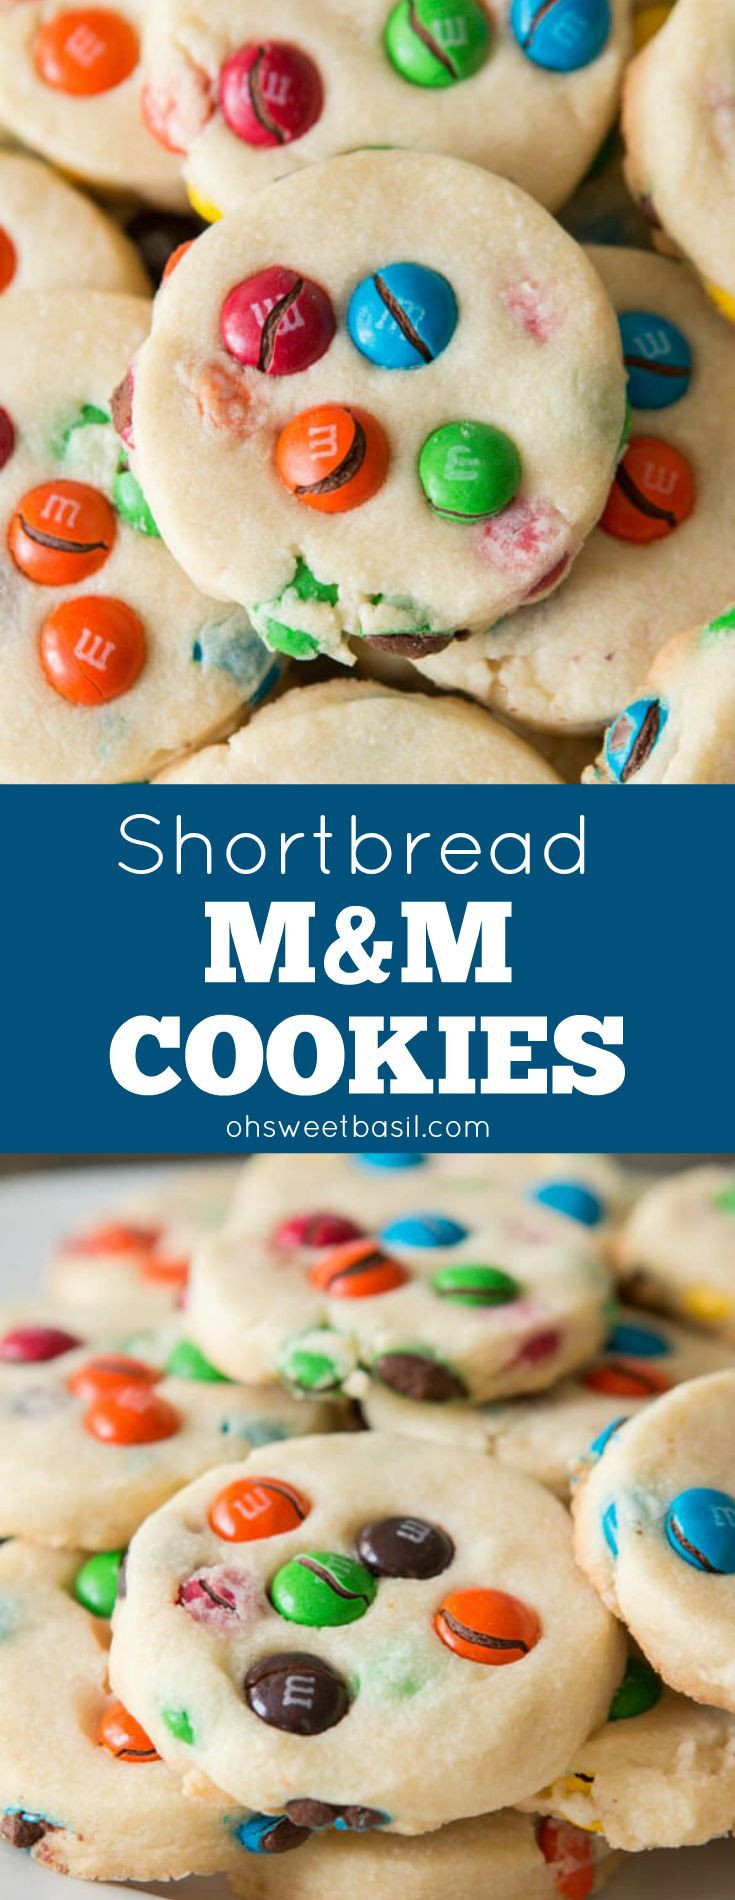 M&M Christmas Cookies Recipe  Buttery shortbread m&m cookies We love making these